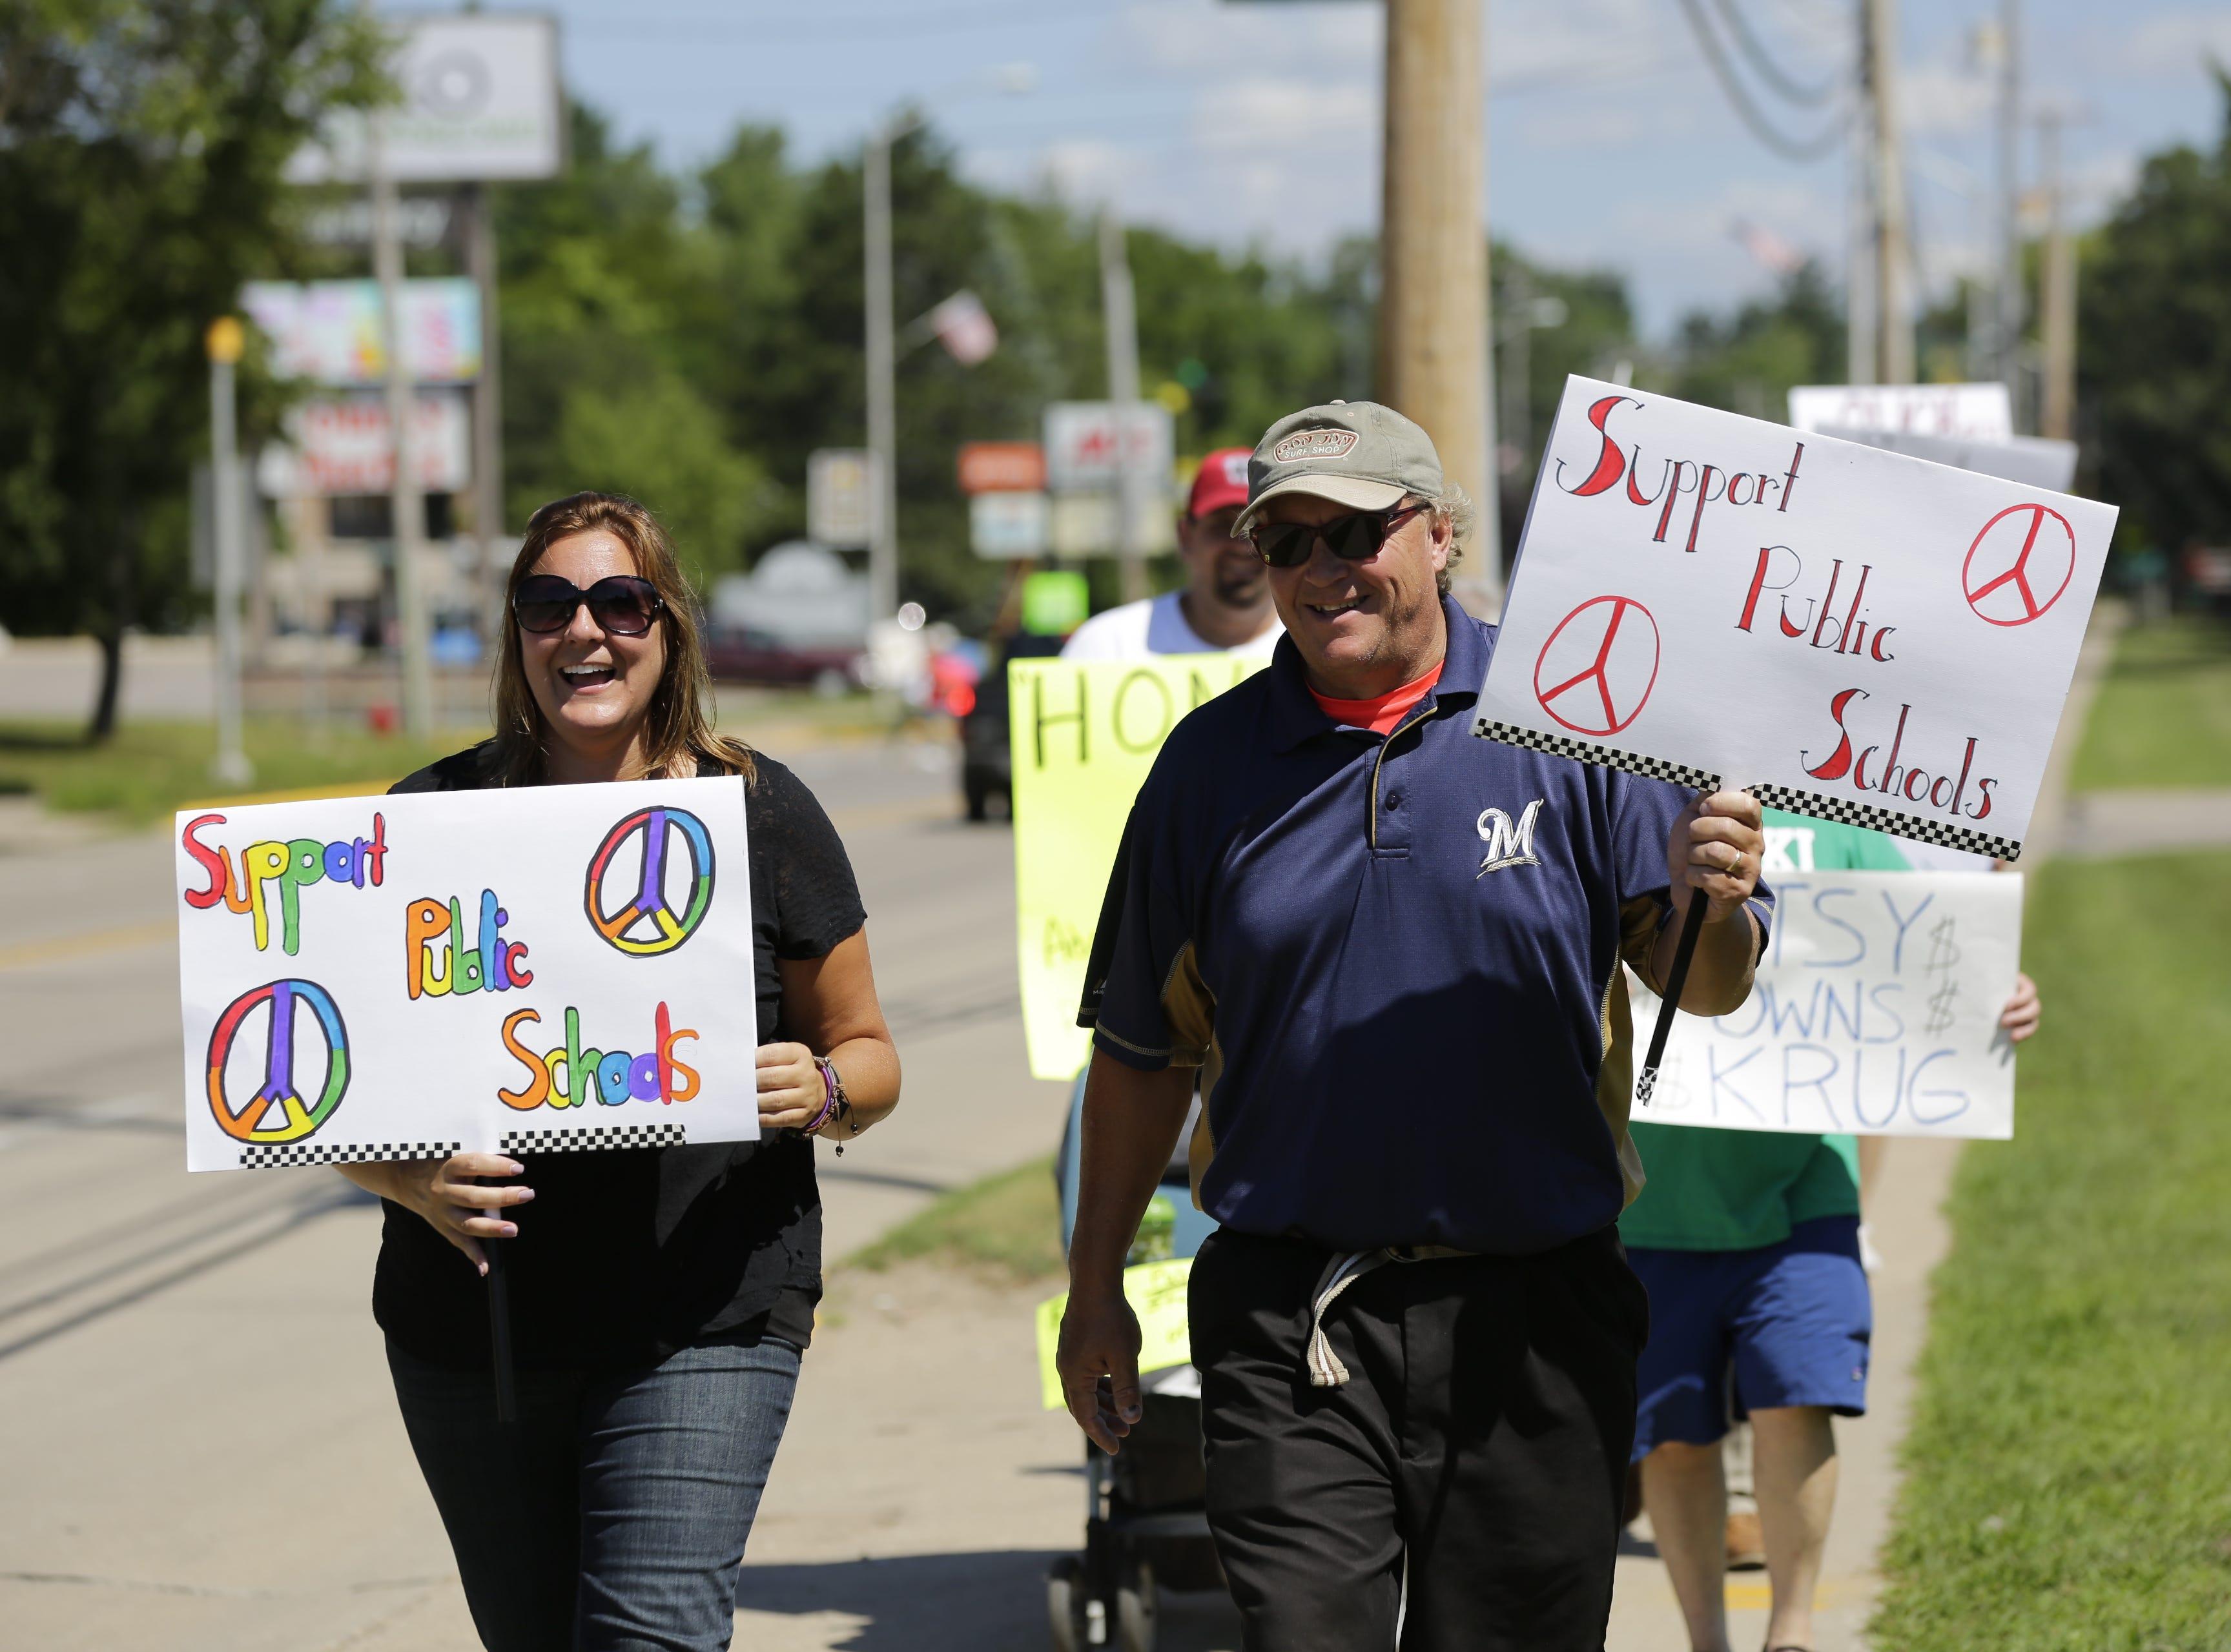 Protestors Jennie Moore and Andy Kloff walk along North Main Street in front of Adams-Friendship Middle School in Adams, Wis. as U.S. Secretary of Education Betsy DeVos appears at the school Tuesday, July 24, 2018.